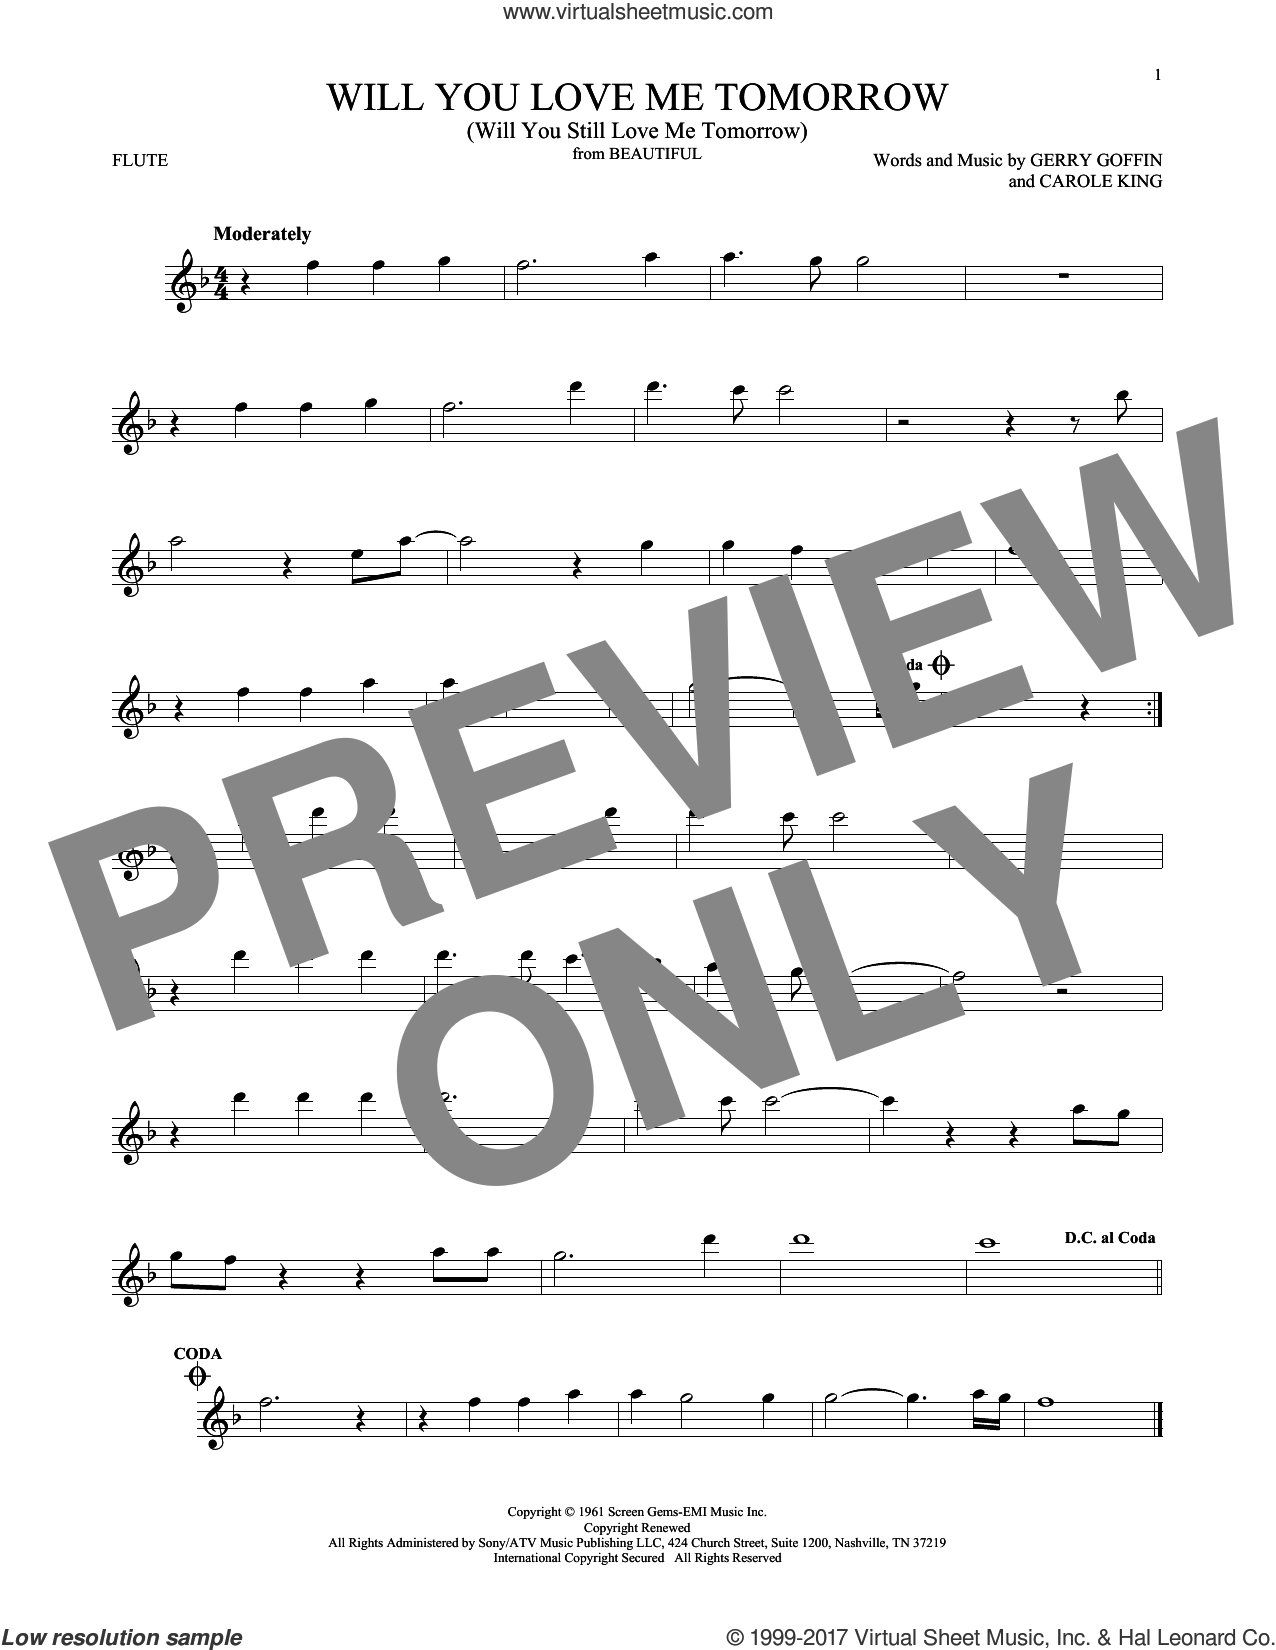 Will You Love Me Tomorrow (Will You Still Love Me Tomorrow) sheet music for flute solo by The Shirelles, Carole King and Gerry Goffin, intermediate. Score Image Preview.